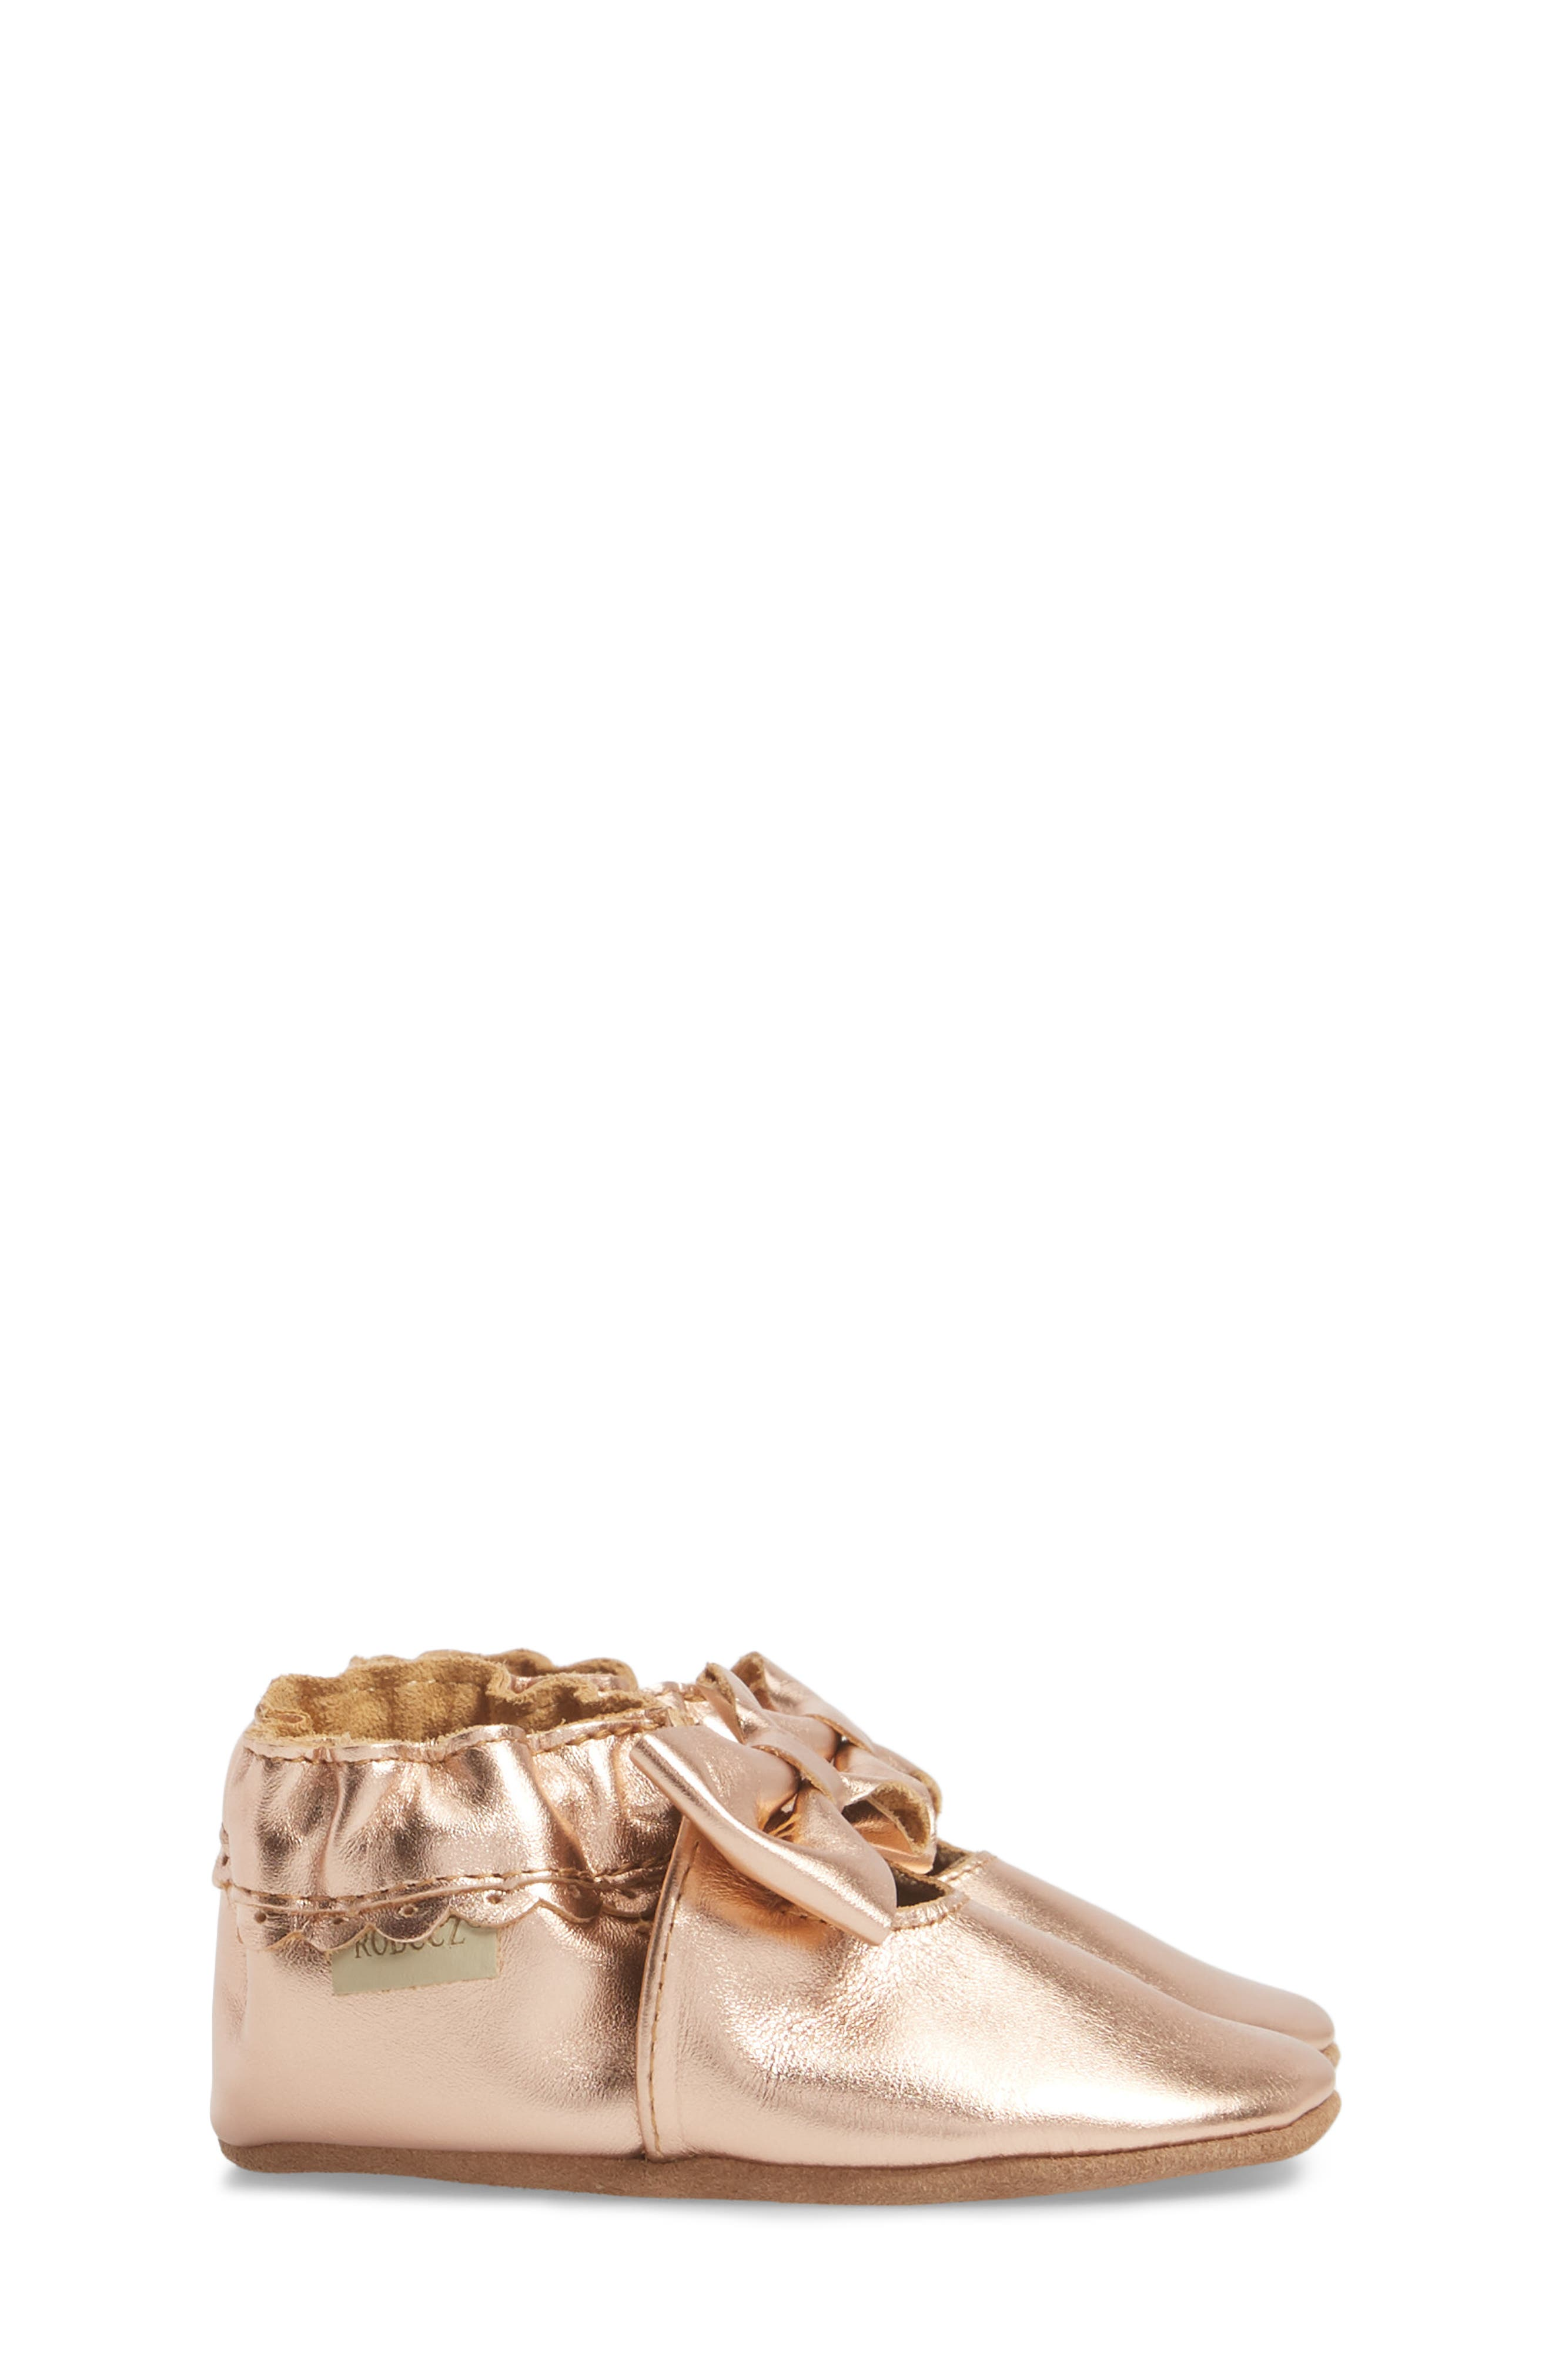 ROBEEZ<SUP>®</SUP>, Rosie Crib Shoes, Alternate thumbnail 3, color, ROSE GOLD